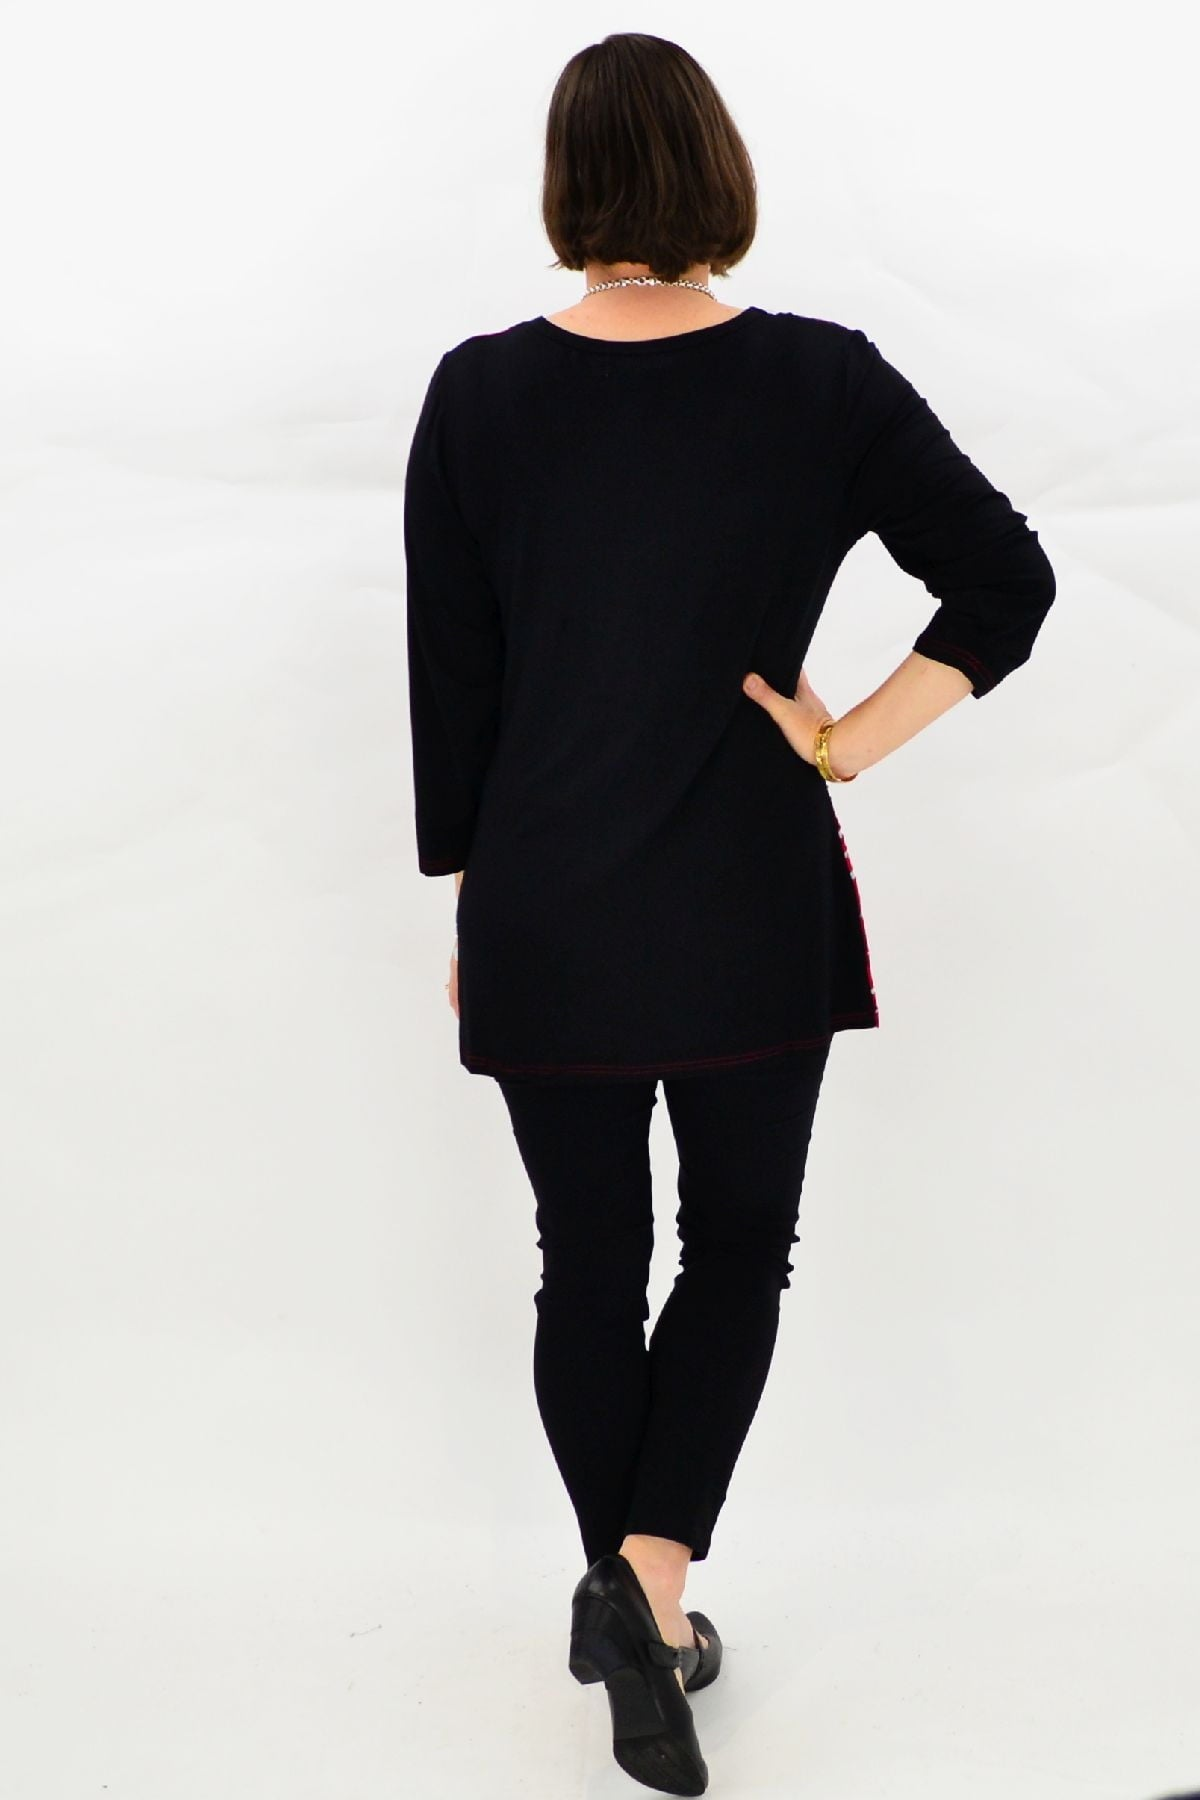 Colette Tunic Top | I Love Tunics | Tunic Tops | Tunic | Tunic Dresses  | womens clothing online